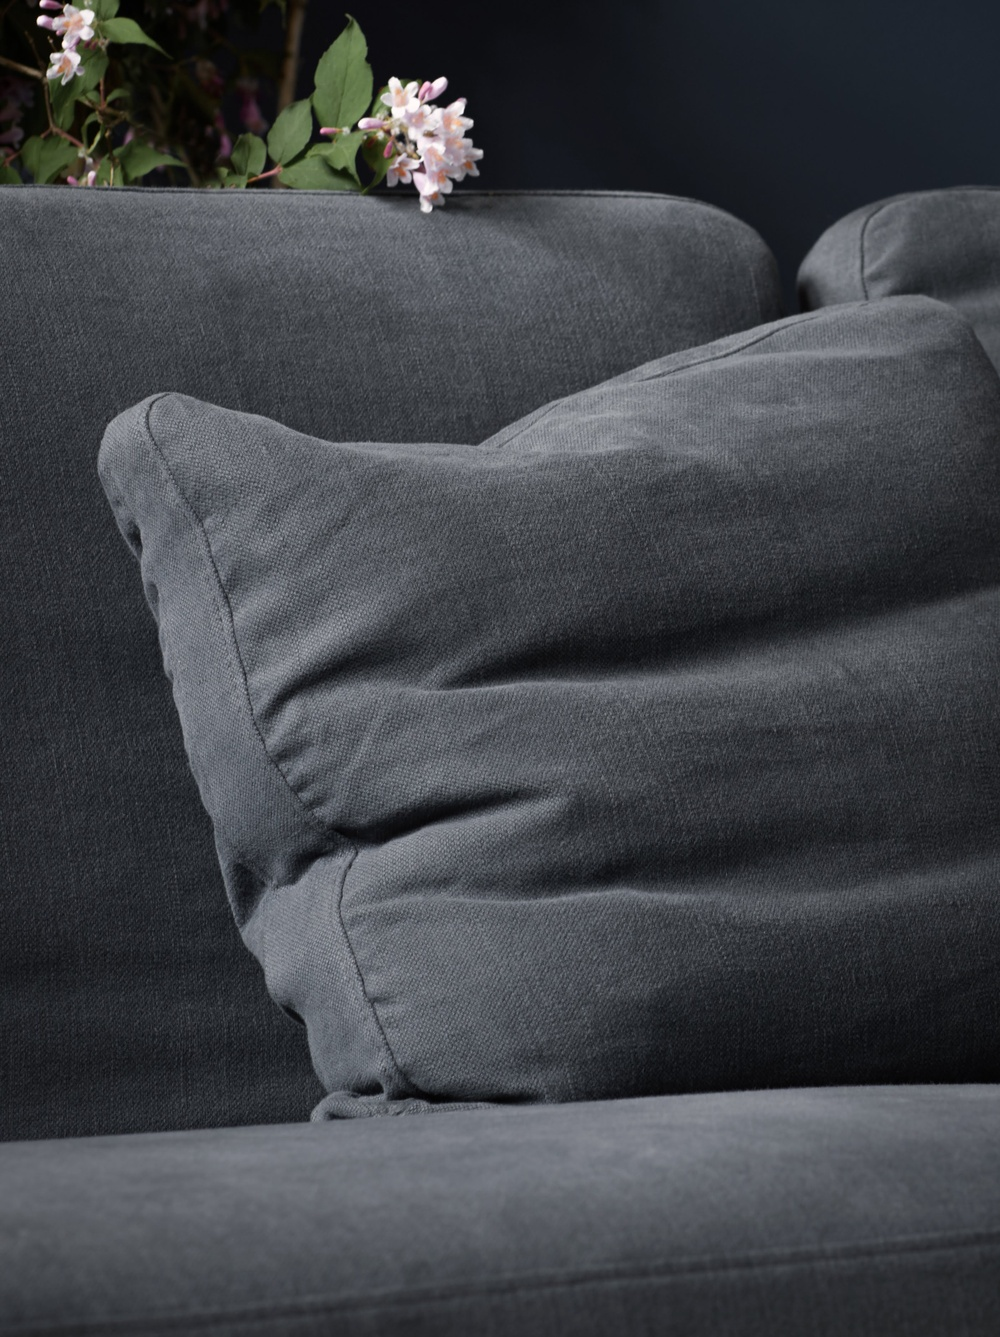 Bemz cover for Stockholm 3.5 sofa, fabric: Simply Linen Graphite Grey. Stylist and photographer: Daniella Witte.